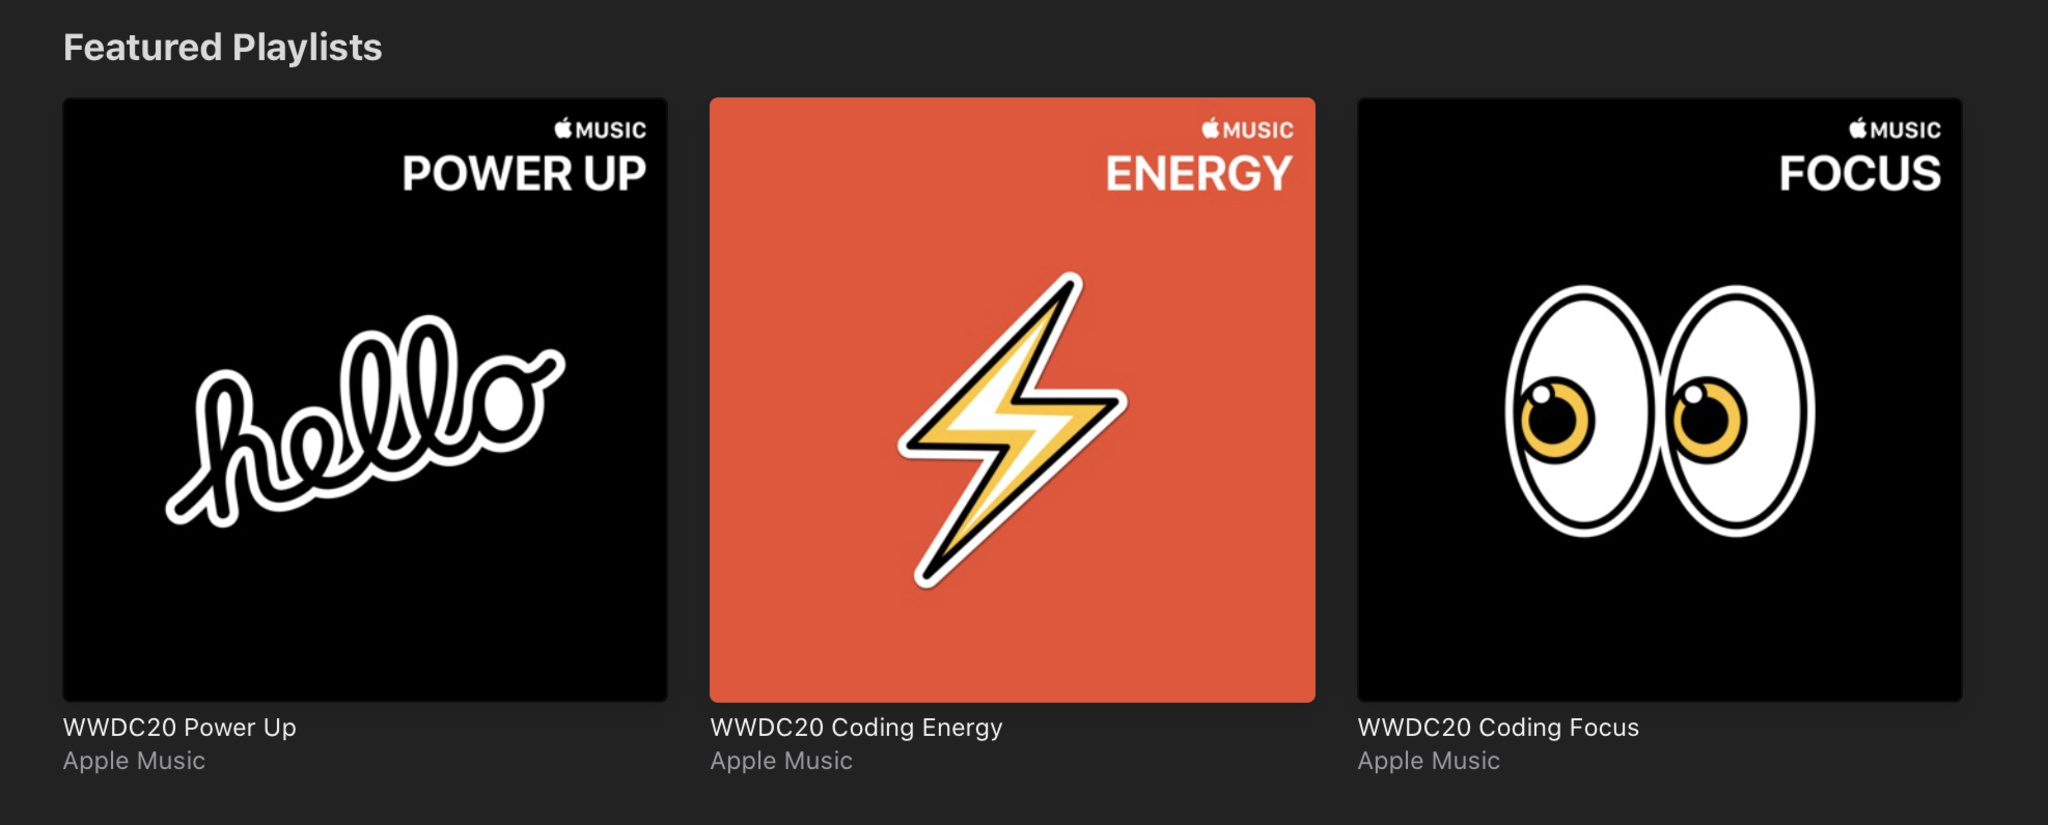 WWDC20 collection screenshot inside Apple Music